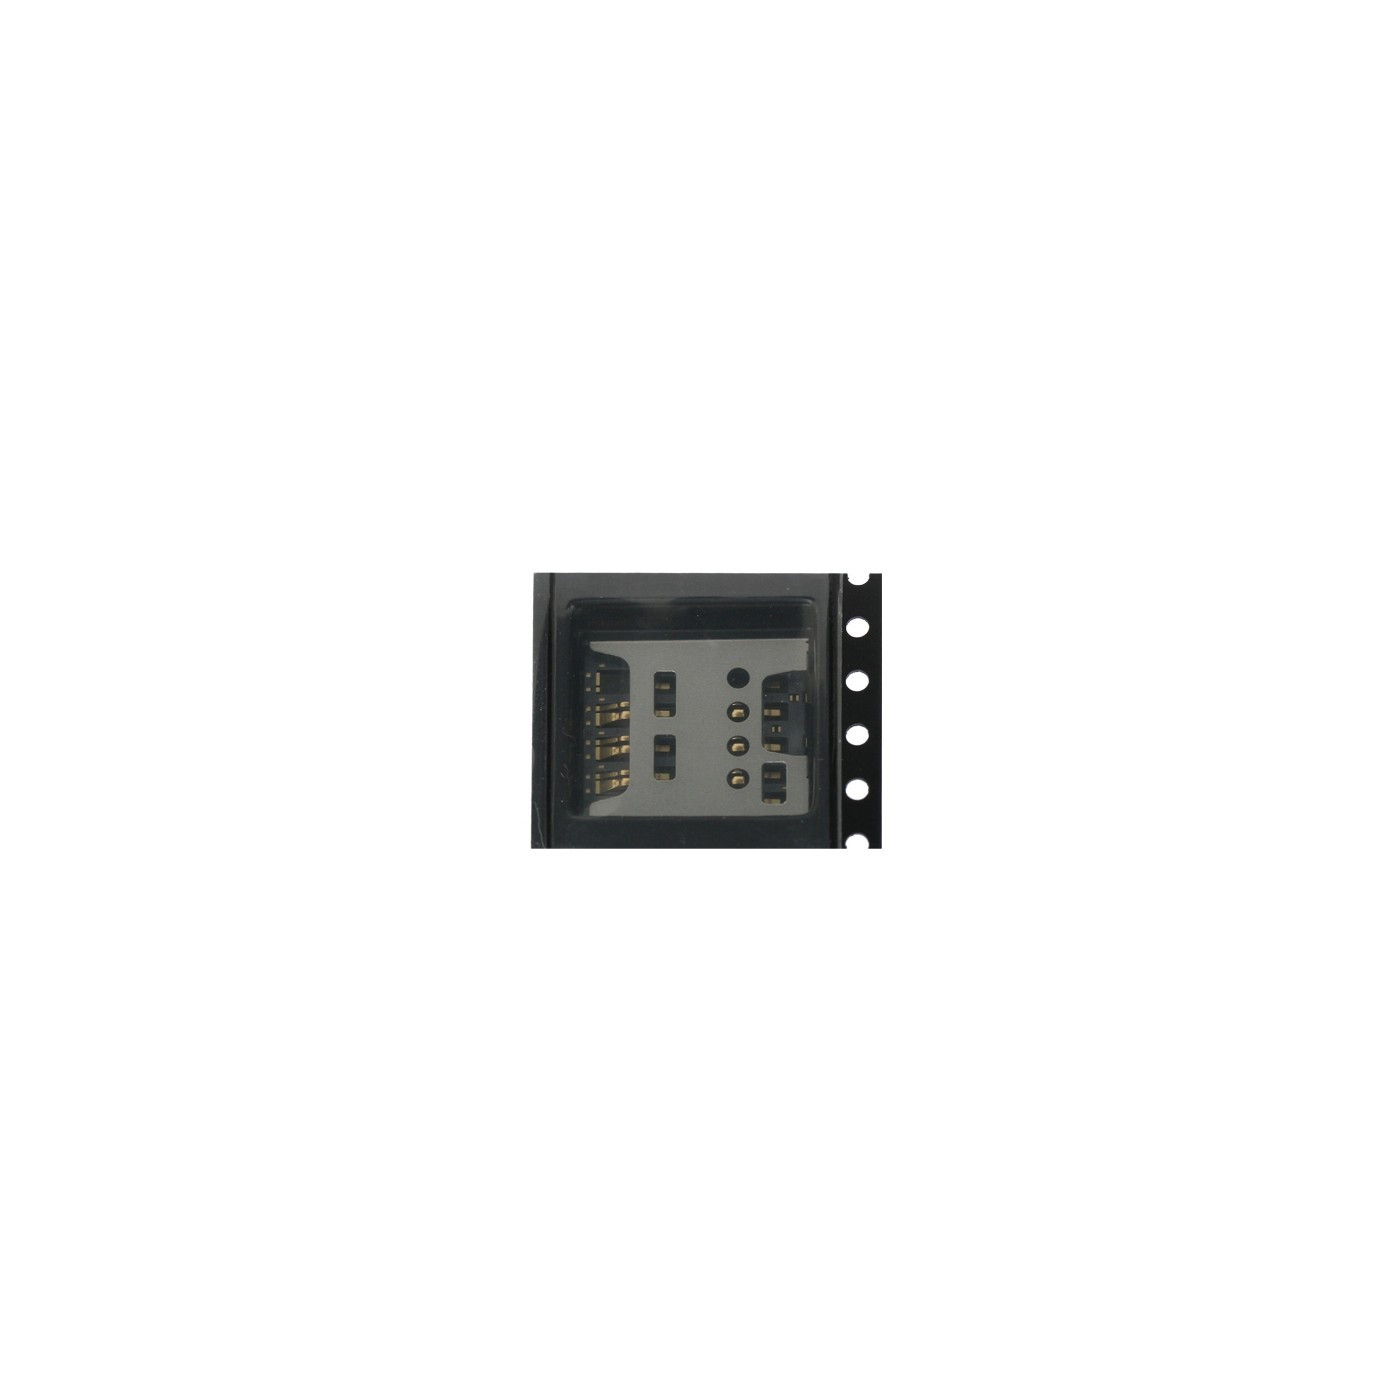 Emplacement carte SIM pour Sony Xperia S LT26i